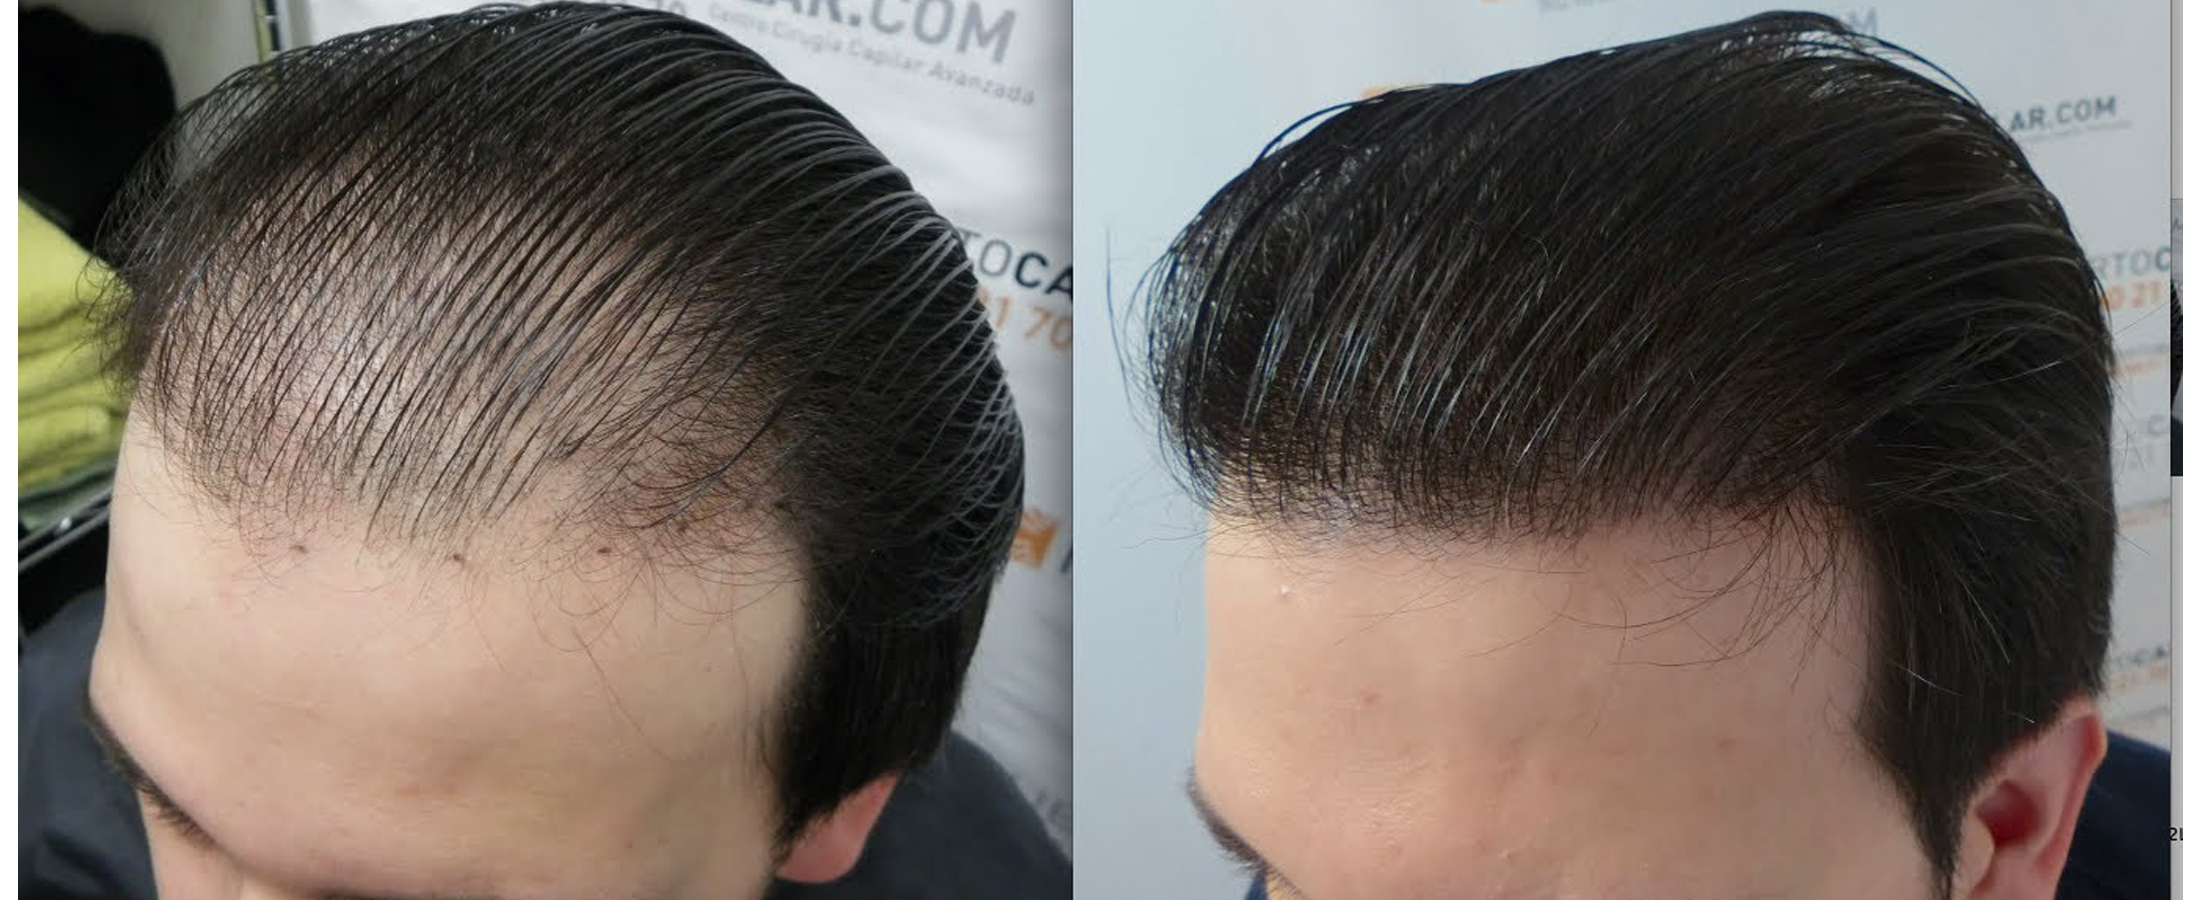 Hair Transplant in Chandigarh 10 - Why Do Women Suffer From Hair Loss Problem?